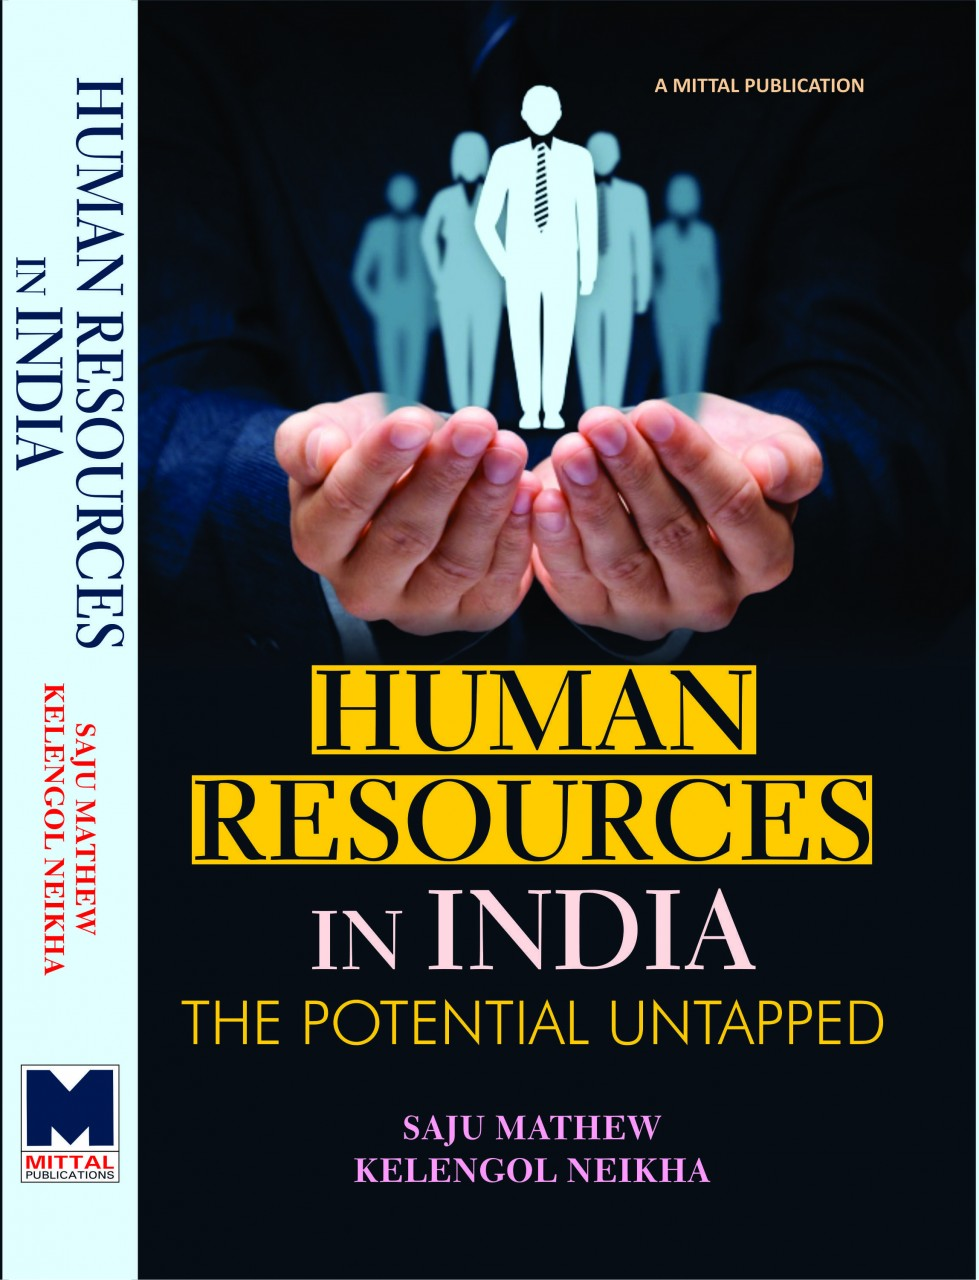 Human Resources in India: The Potential Untapped